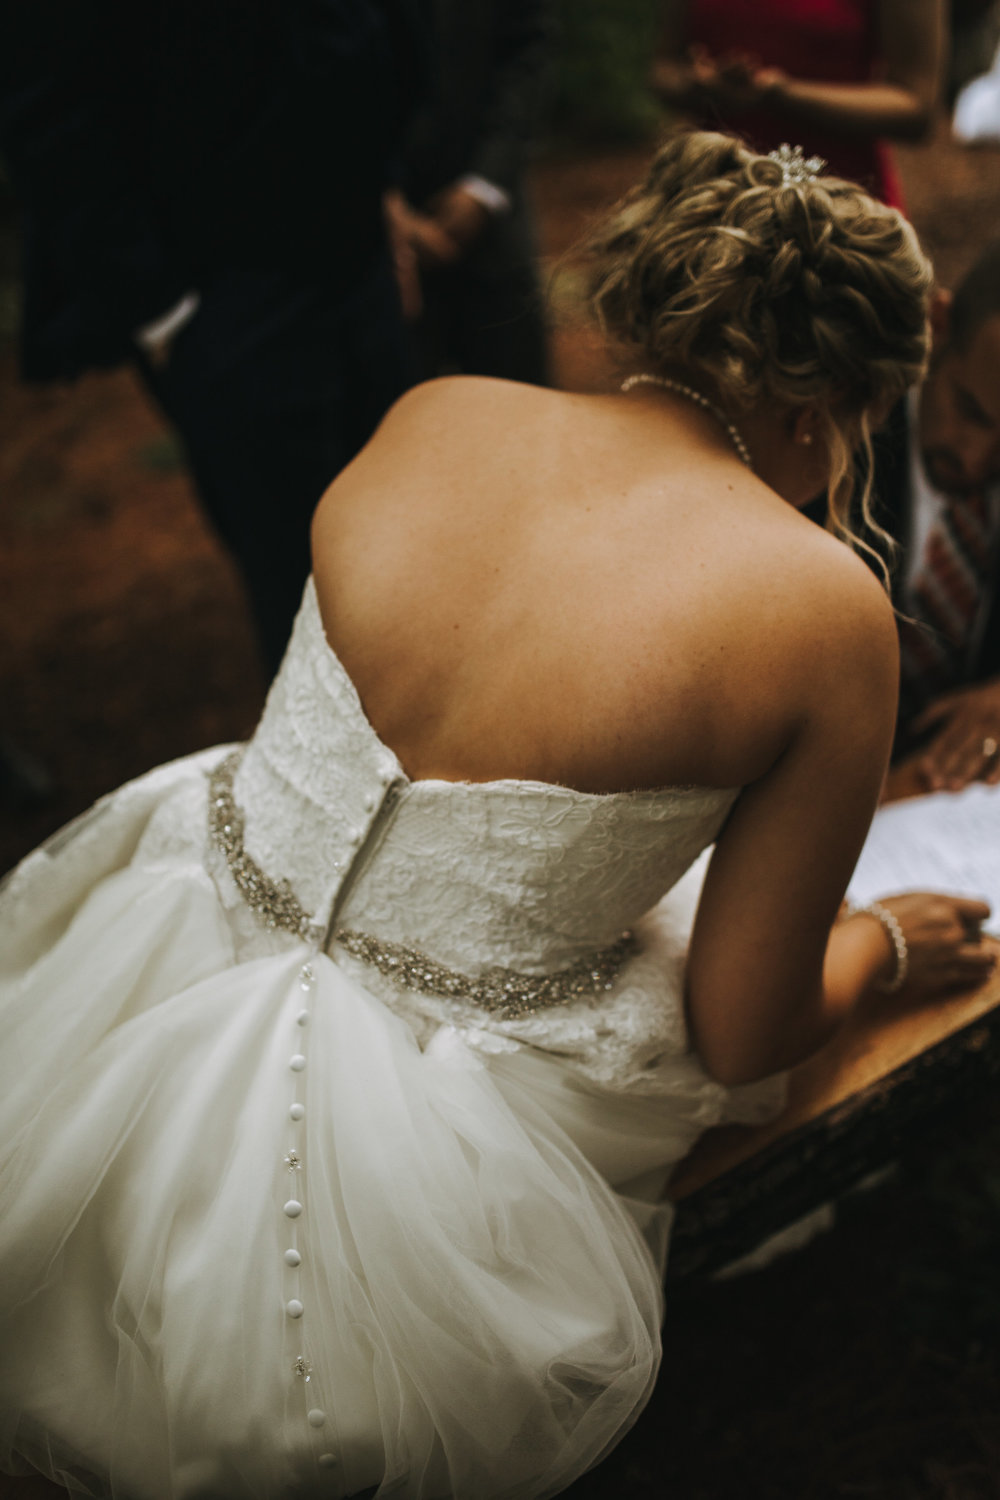 The details on Destinee's dress while she was signing the marriage license.